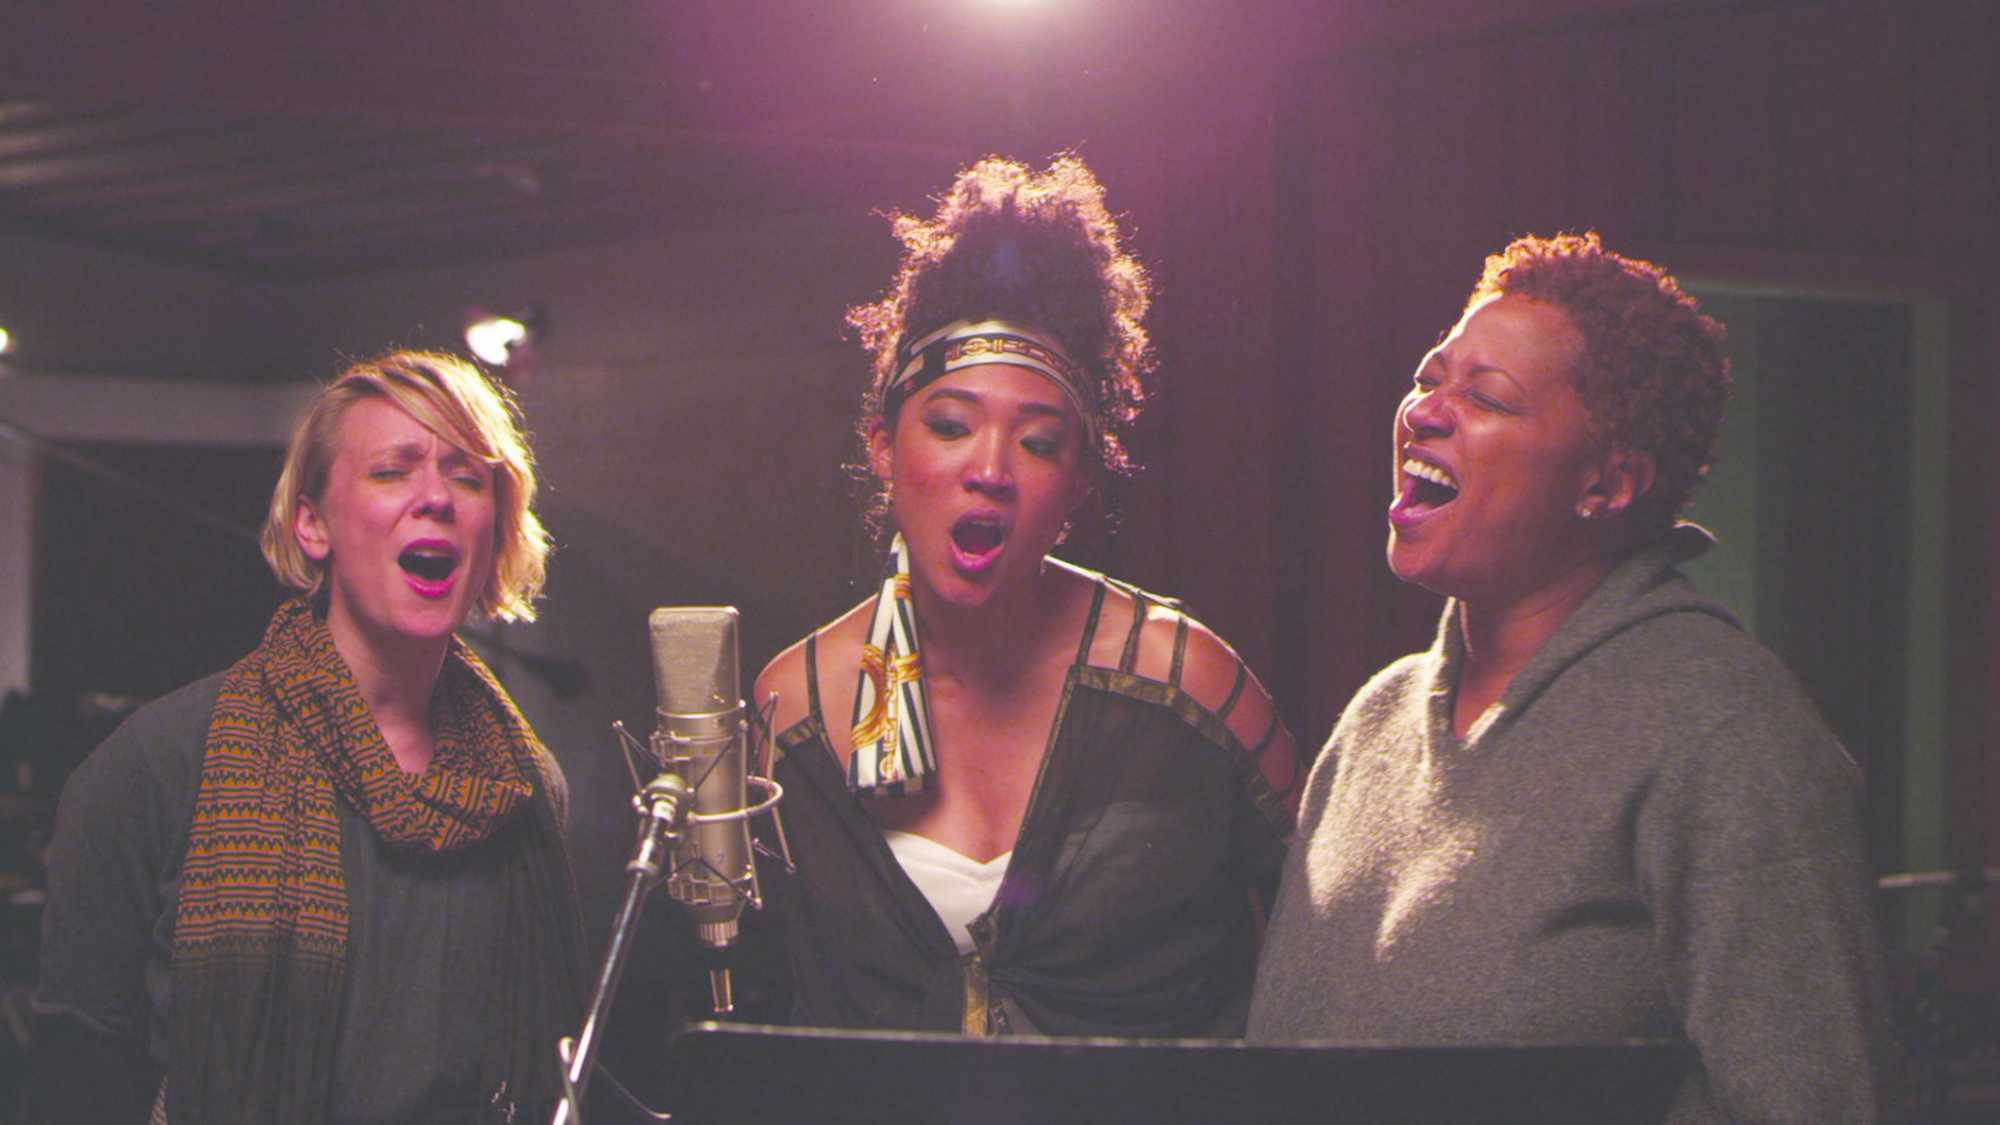 Twenty Feet from Stardom (image 1)